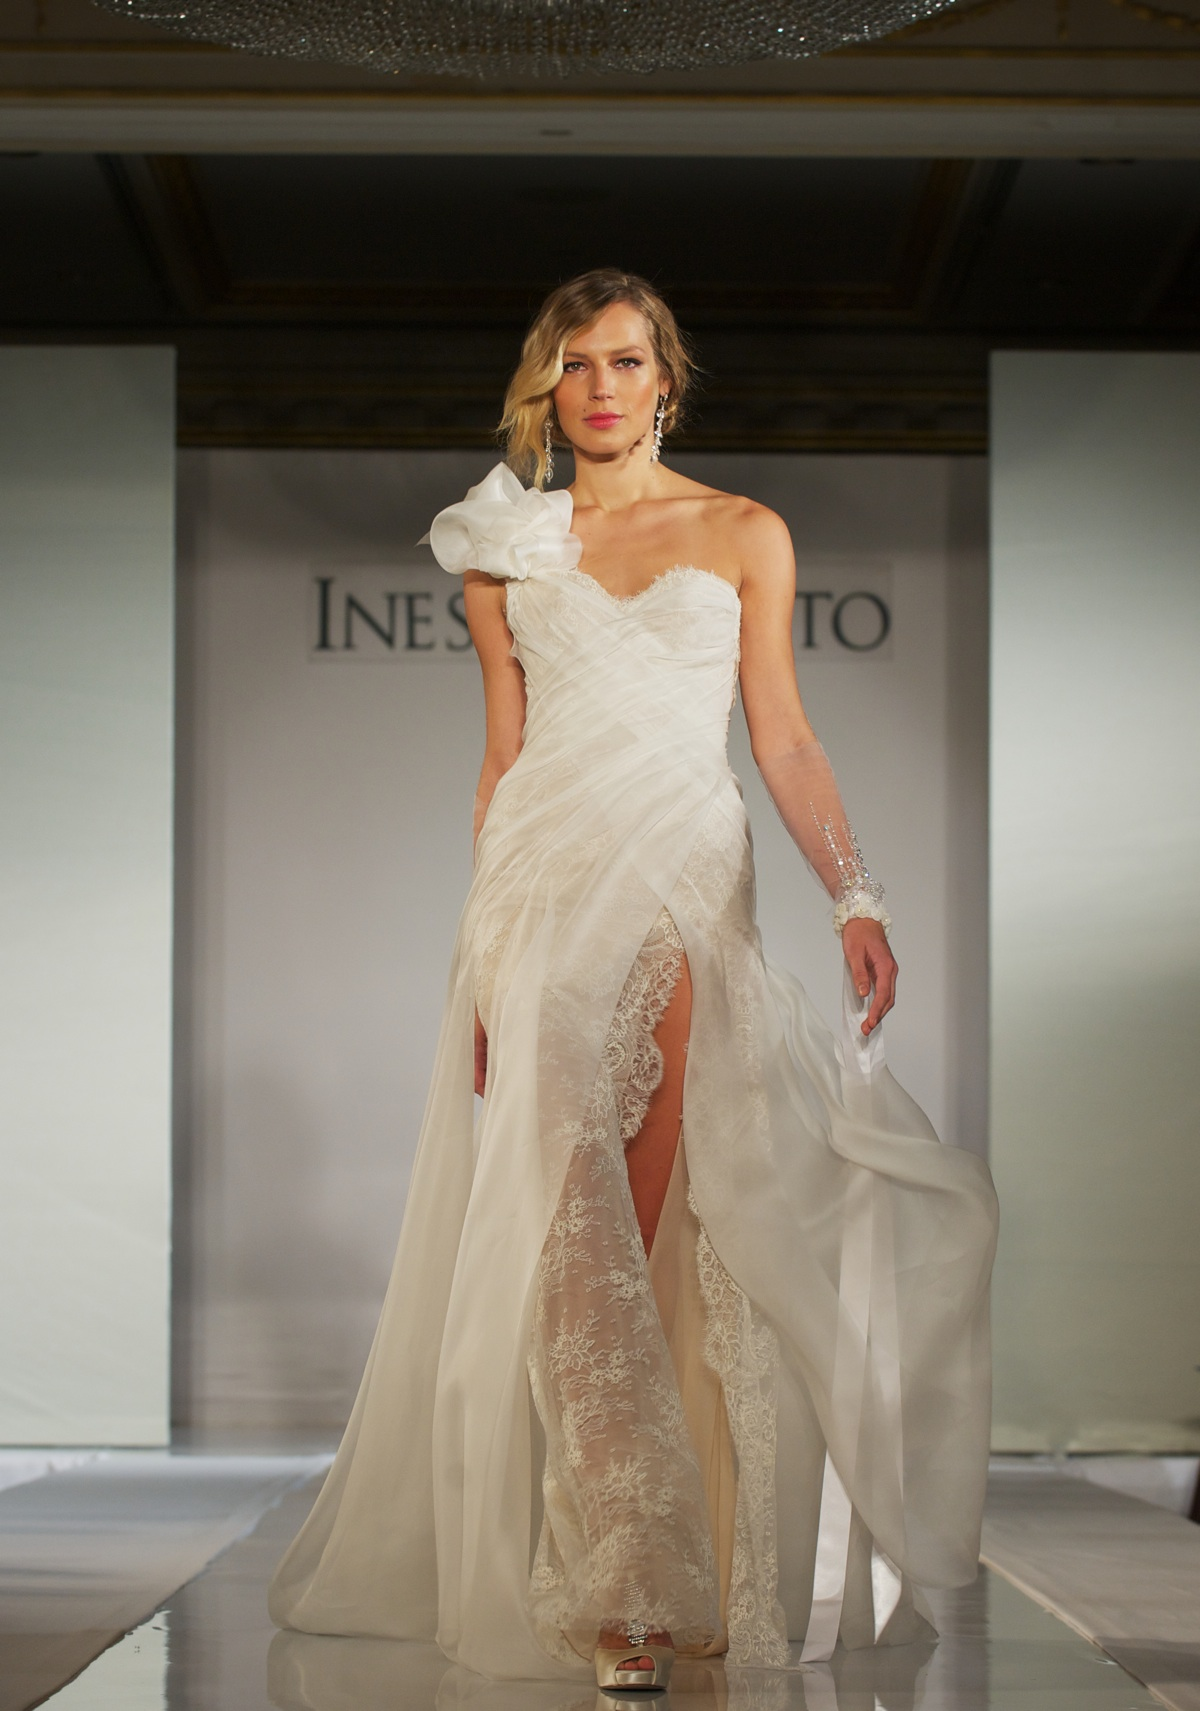 2012 wedding dress trends gowns with slits and sleeves With ines di santo wedding dress